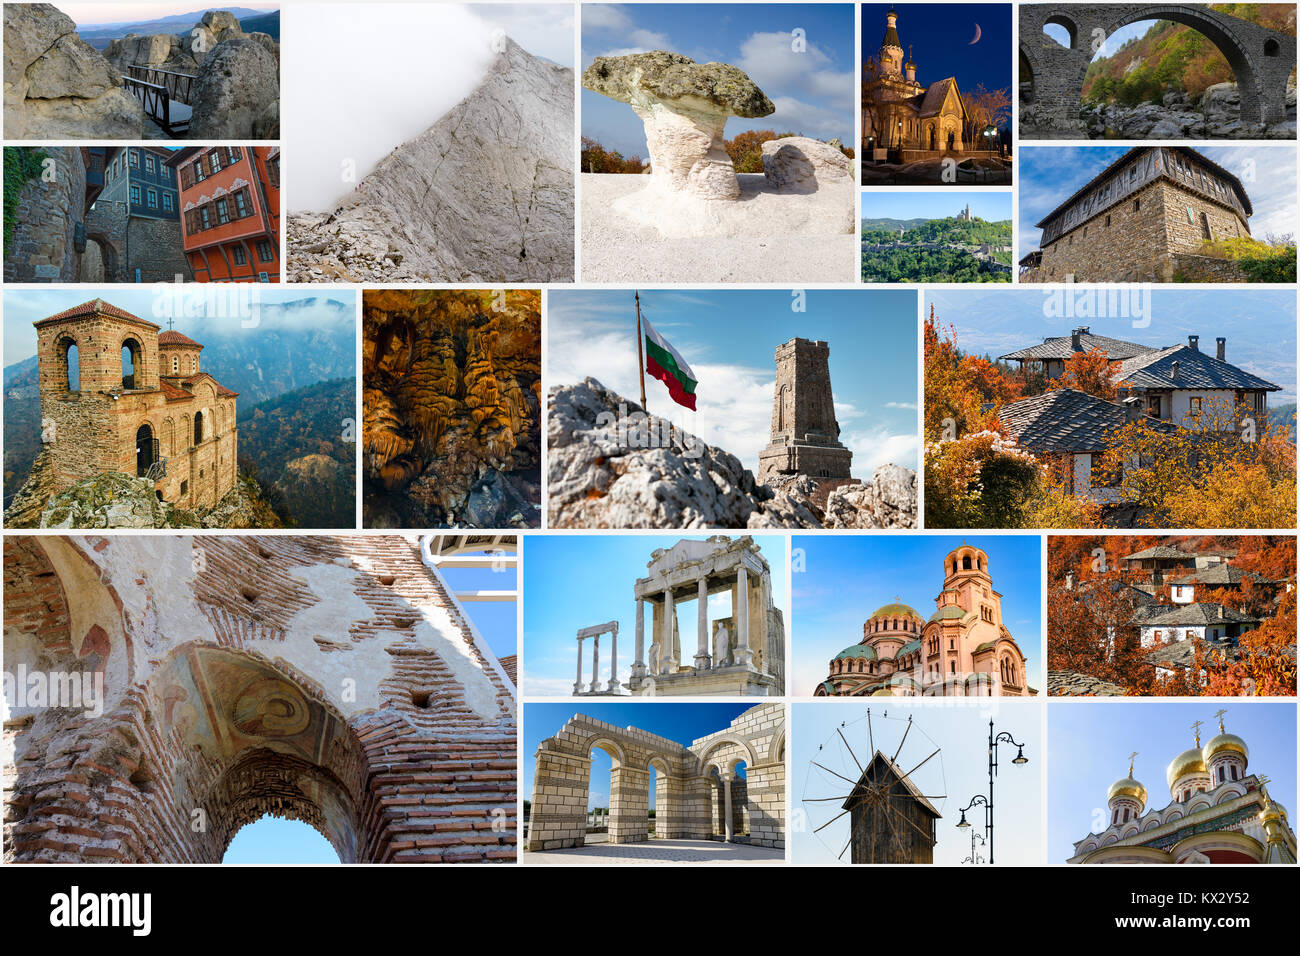 Collage Of Bulgarian Landmarks Iconic Places And Popular Travel Destinations